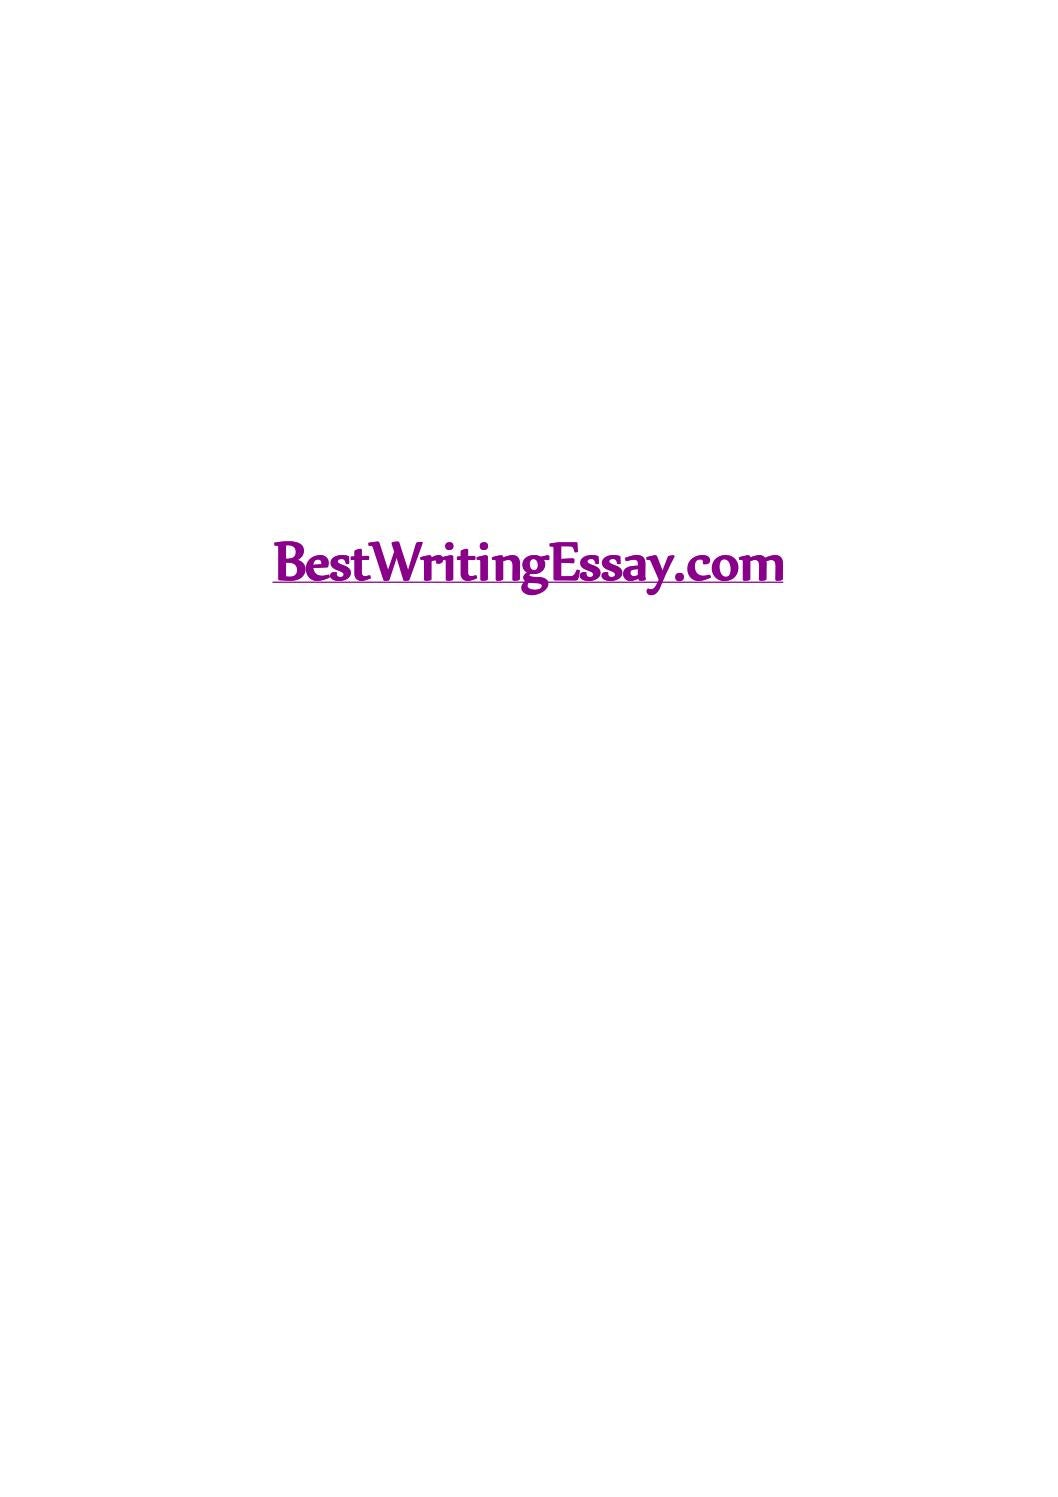 Lolita thesis statement statistics and research essay